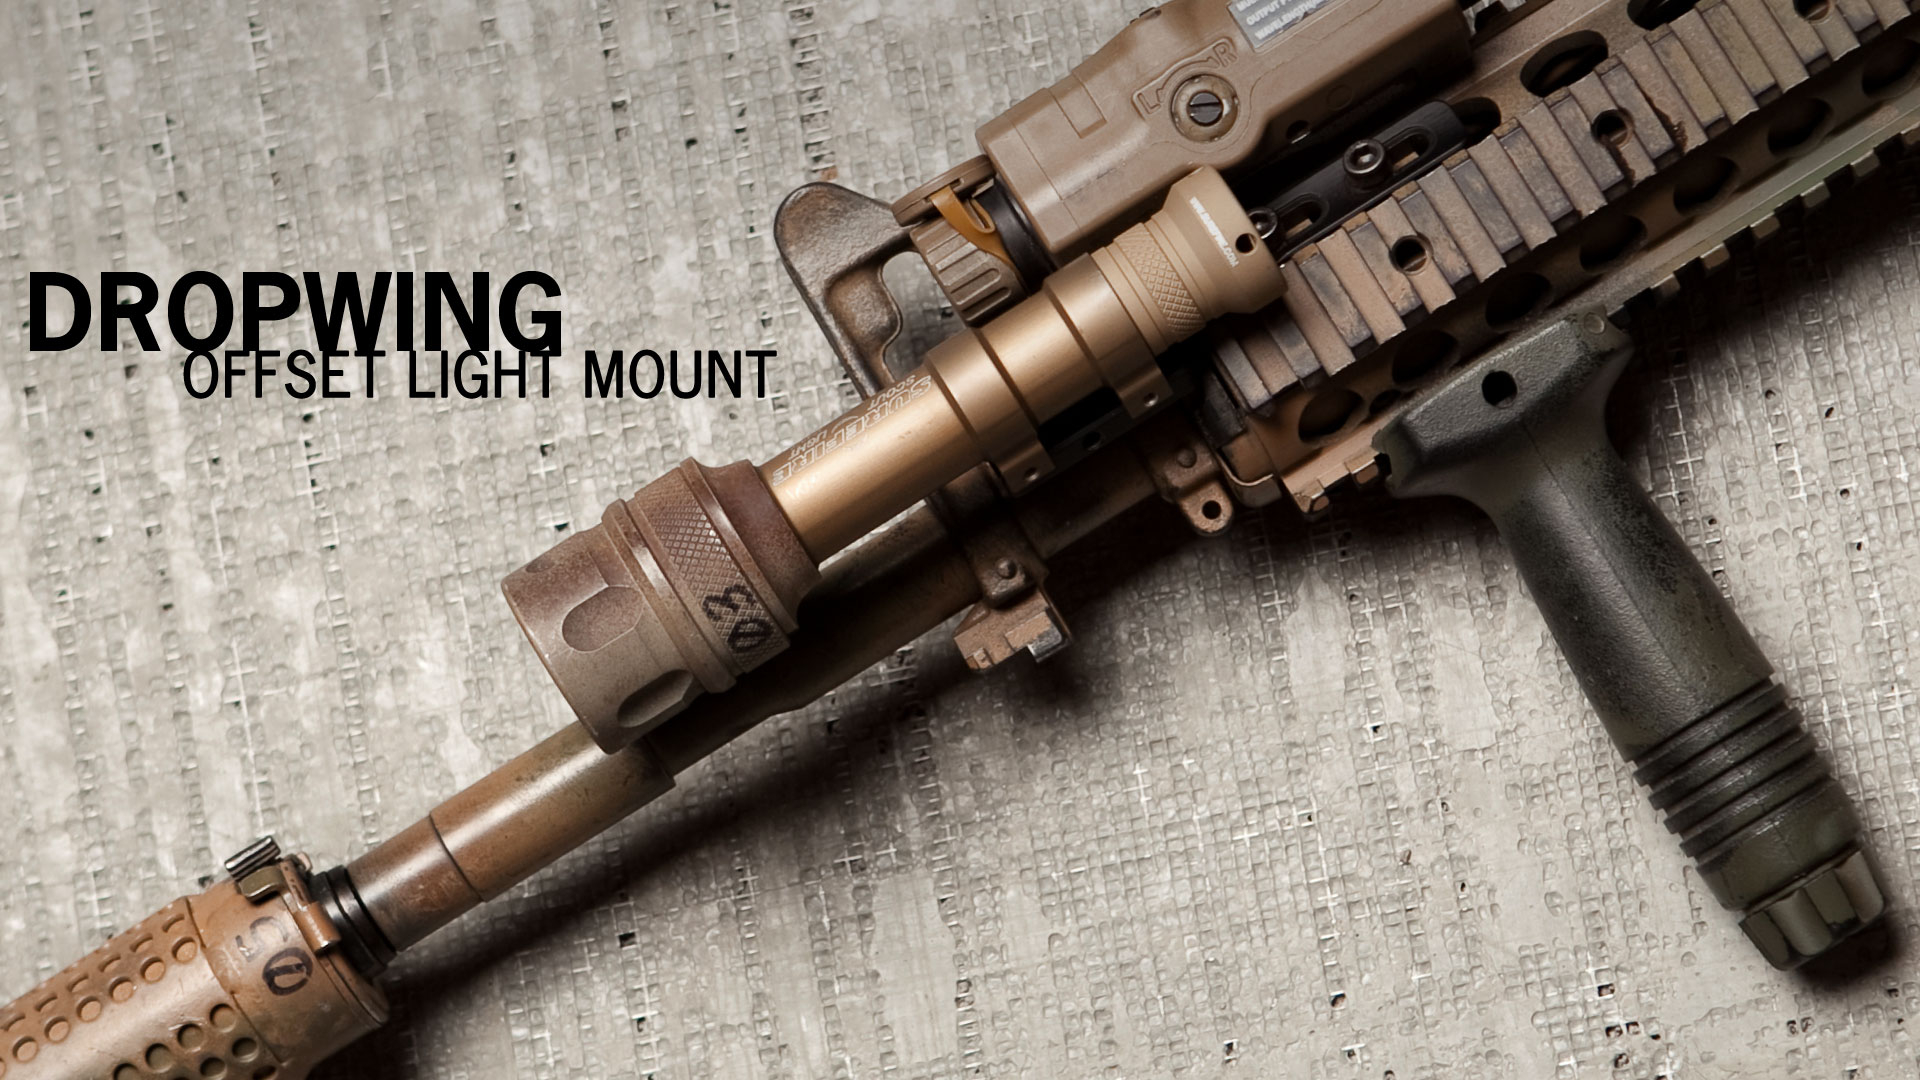 Dropwing Offset Light Mount